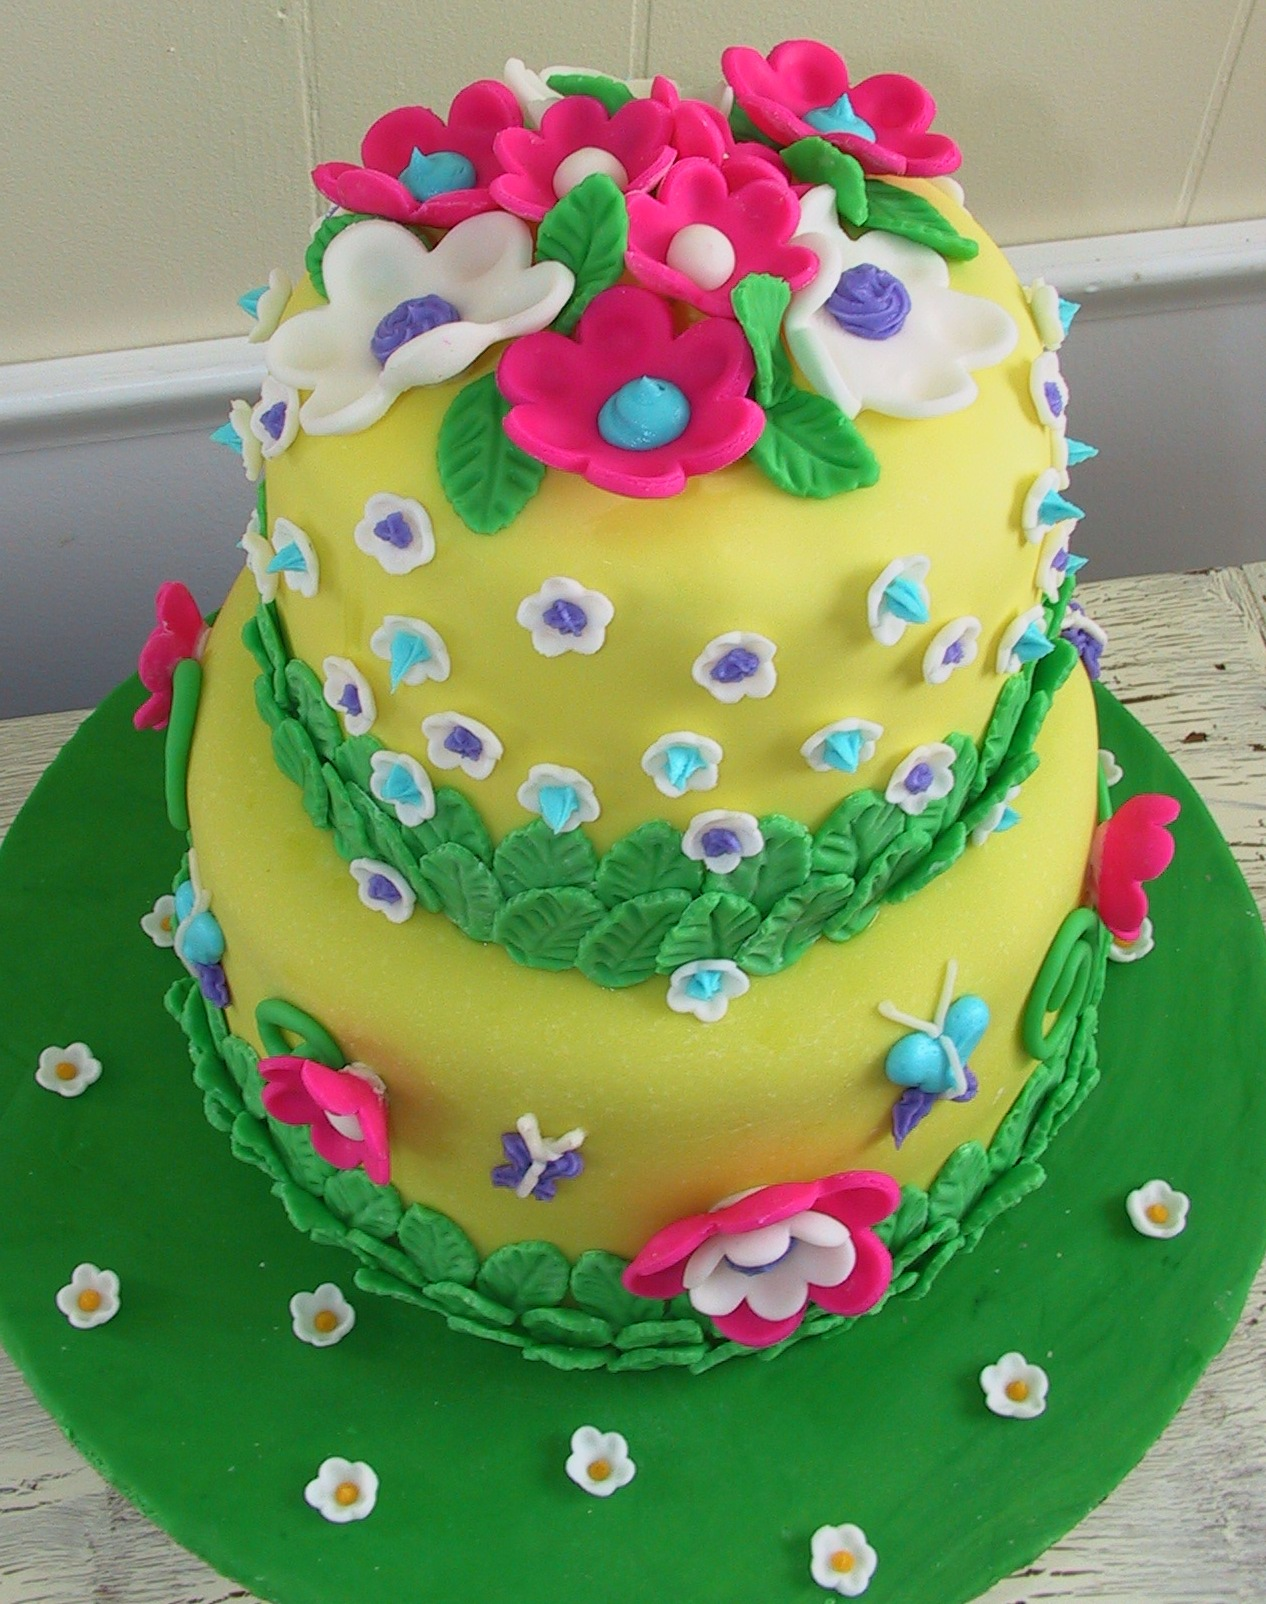 Birthday Cake Decor Ideas : Flower Cakes   Decoration Ideas Little Birthday Cakes